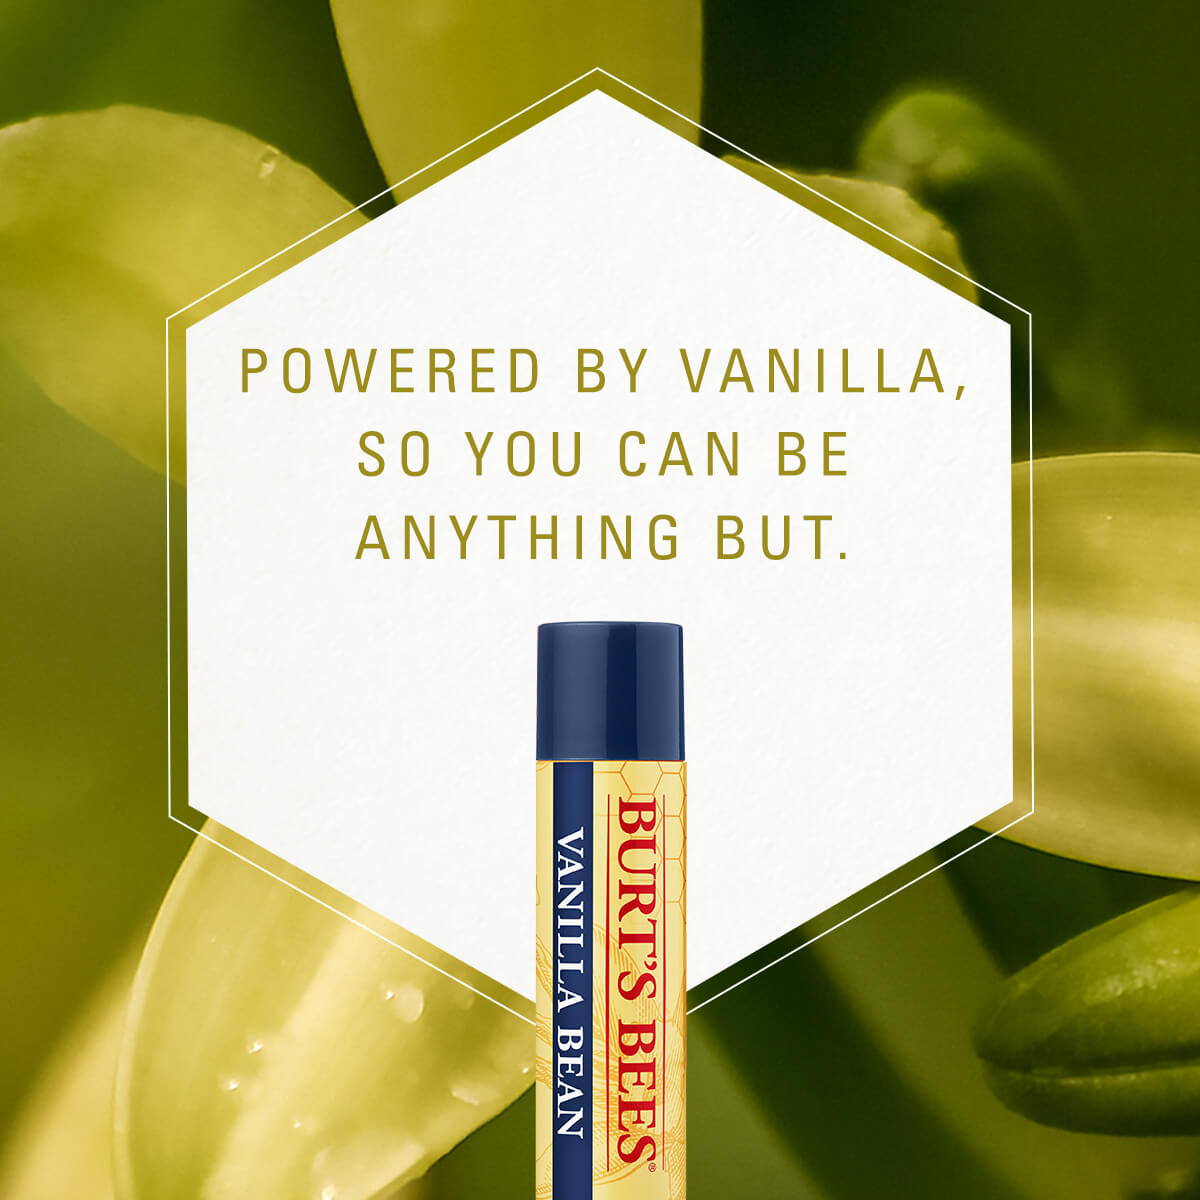 powered by vanilla, so you can be anything but,